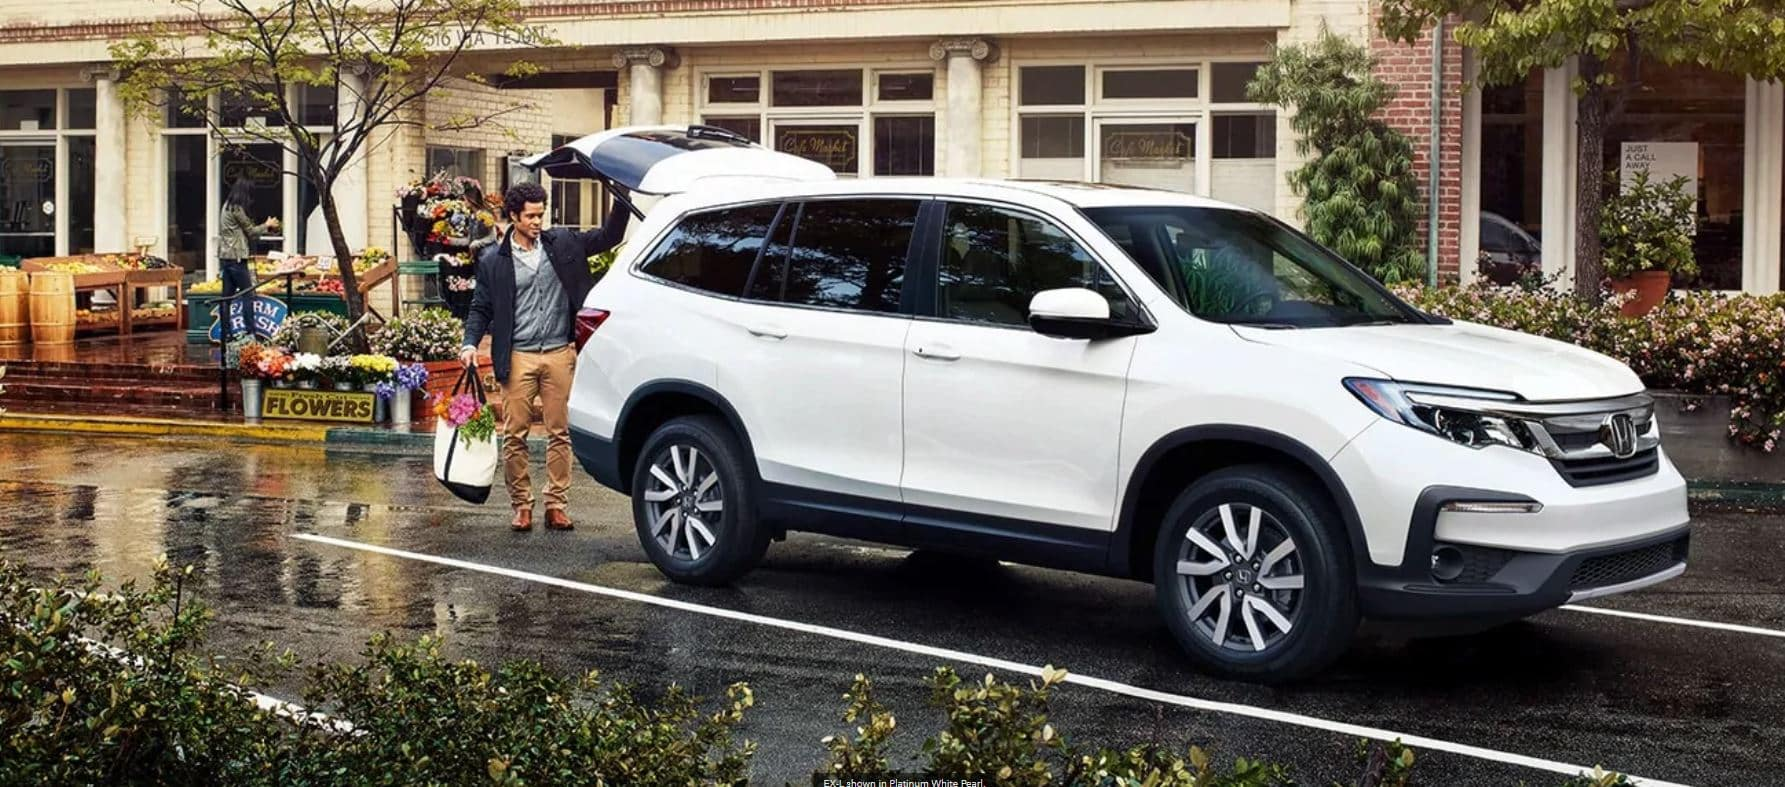 White 2020 Honda Pilot with automatic lift gate being loaded up with groceries